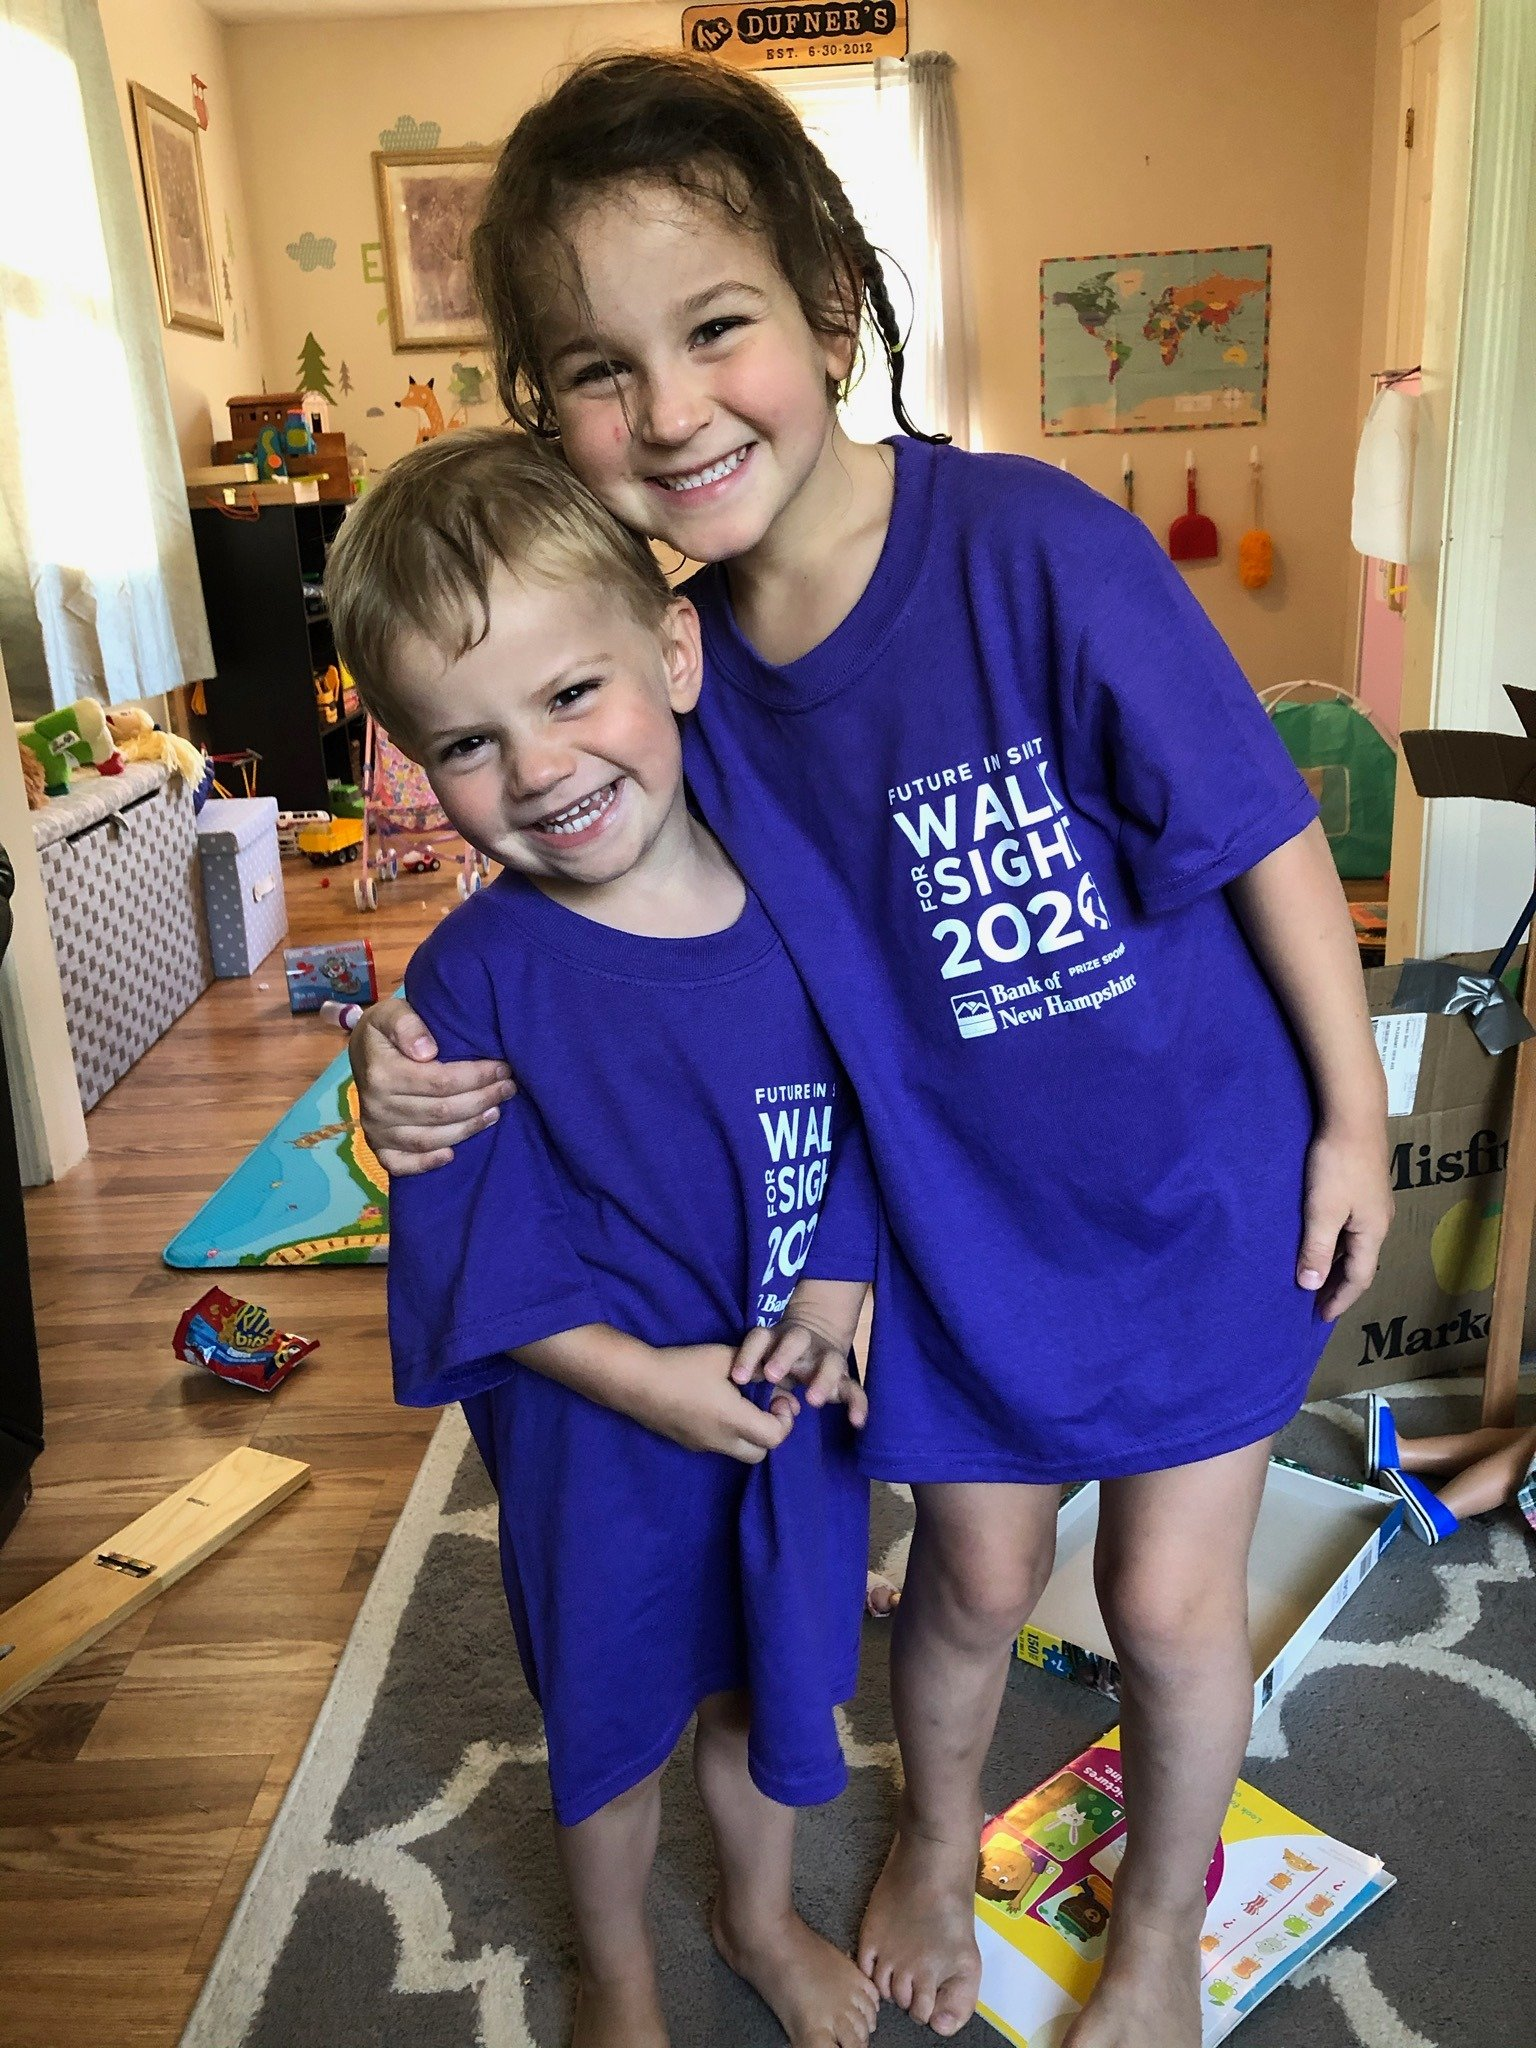 2 Smiling Children in their purple Walk for Sight 2020 t-shirts